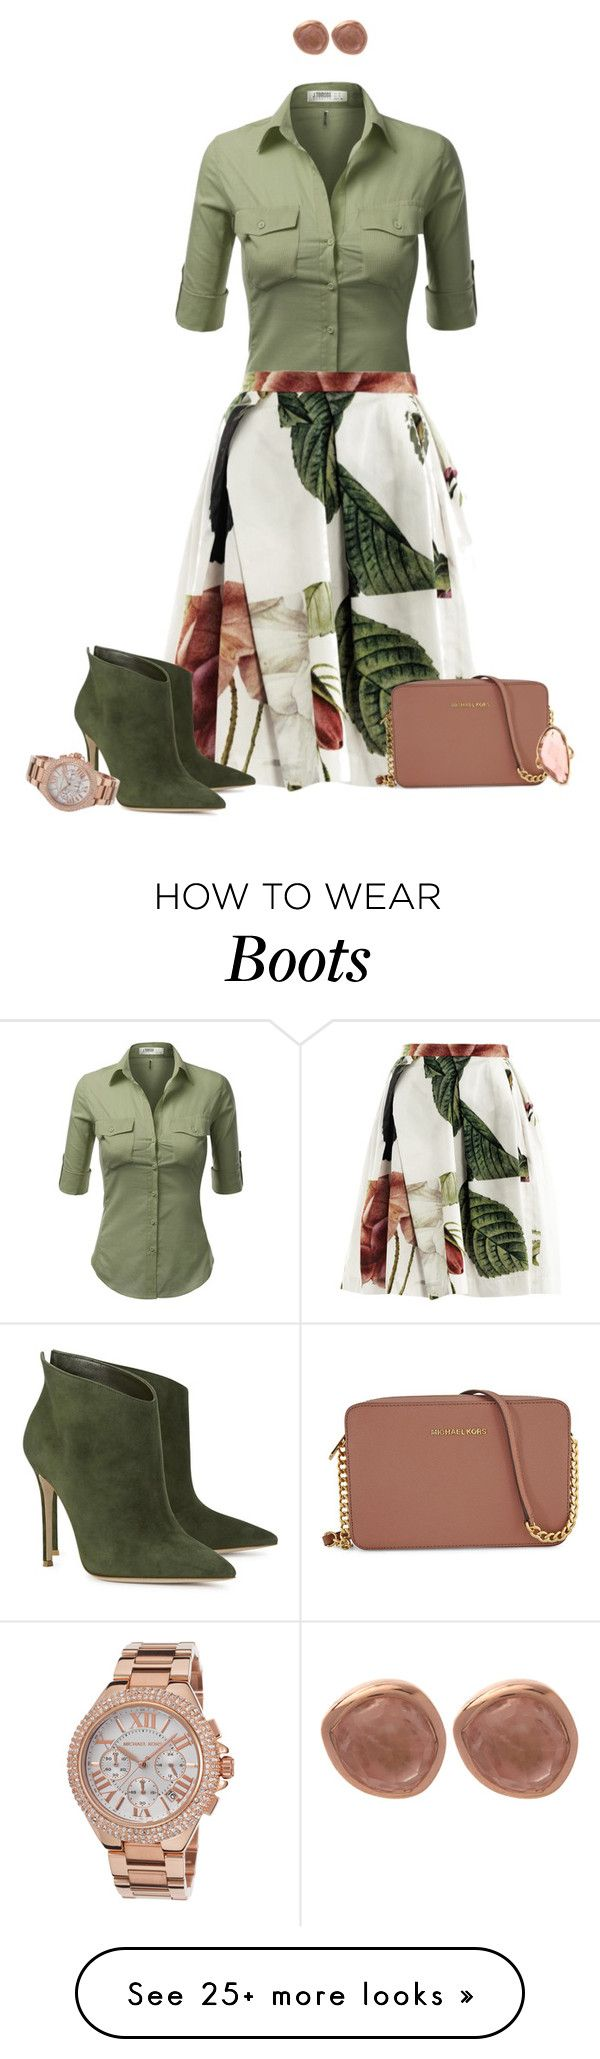 """Ankle boots and a skirt set 2"" by tracy-gowen on Polyvore featuring J.TOMSON, Vivienne Westwood Anglomania, Michael Kors, Gianvito Rossi, Monica Vinader and Mark Broumand"